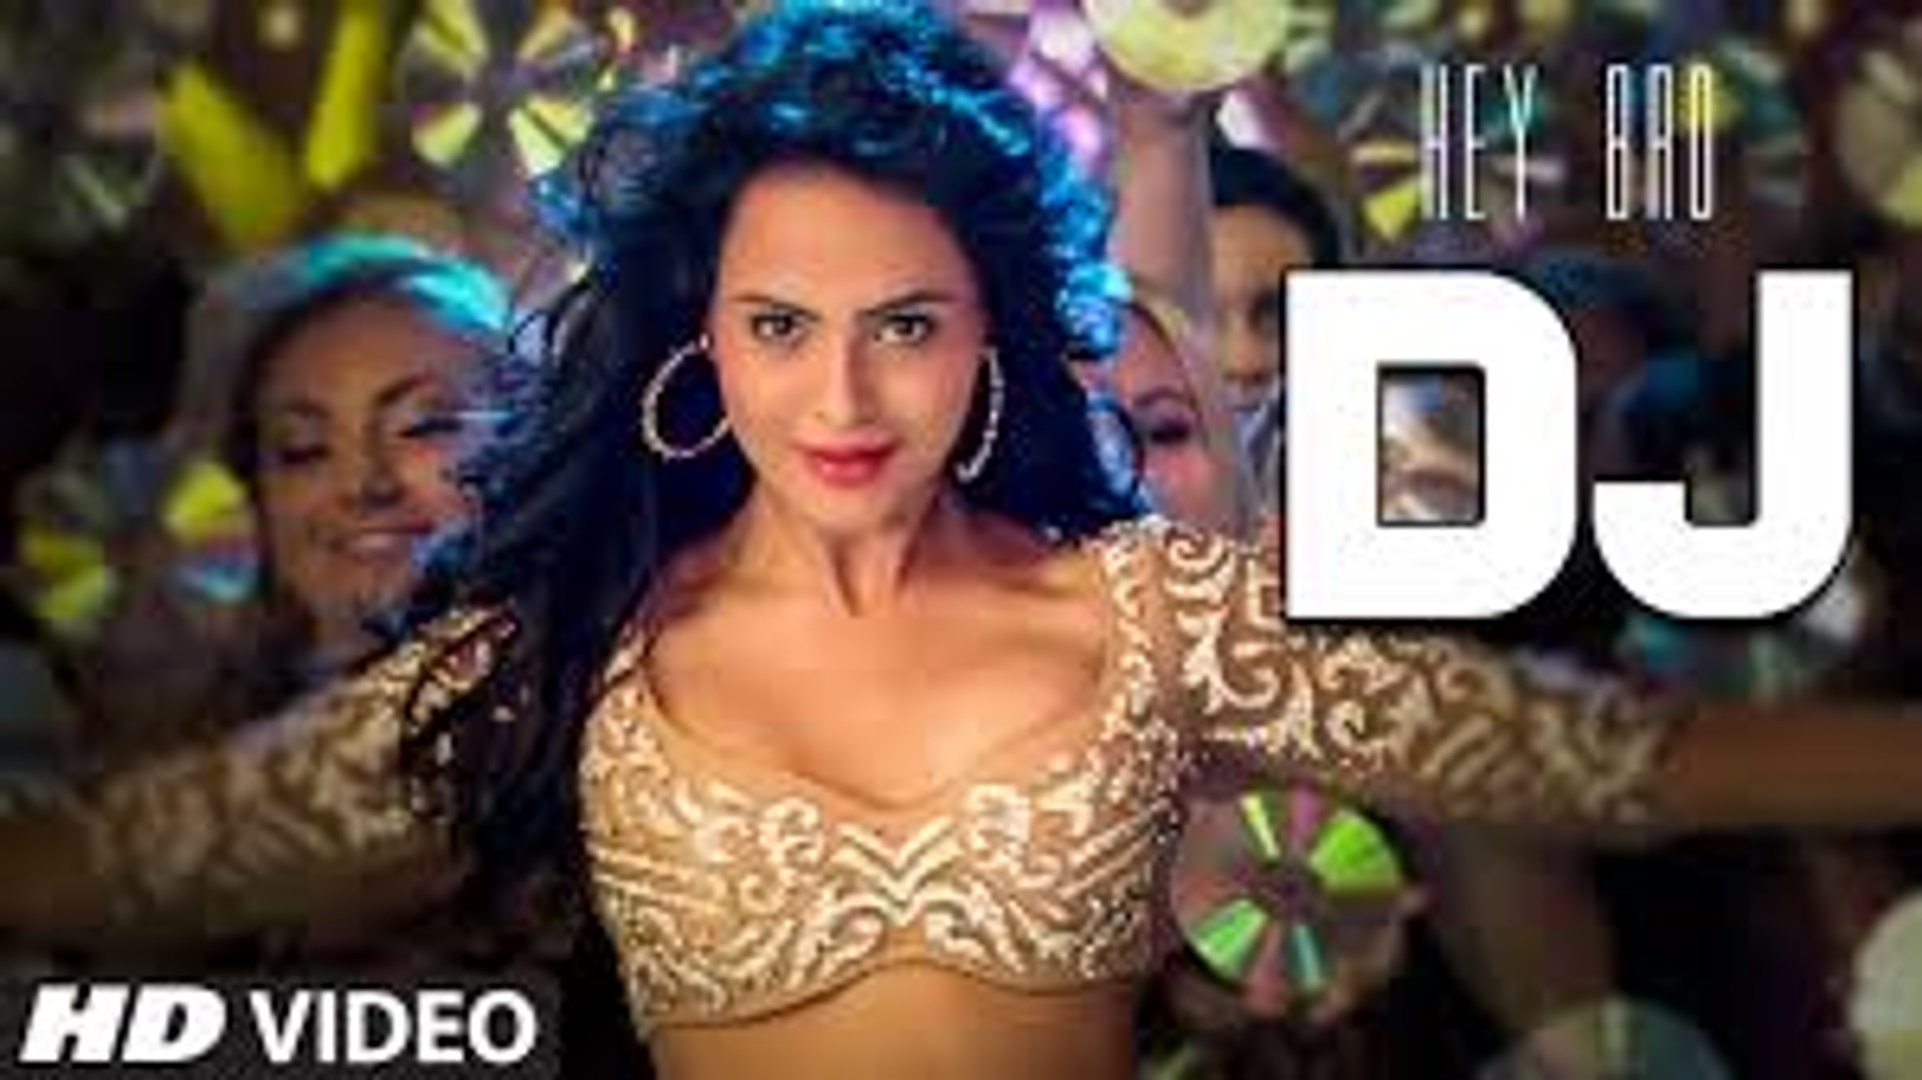 DJ Video Song (Hey Bro) Full HD